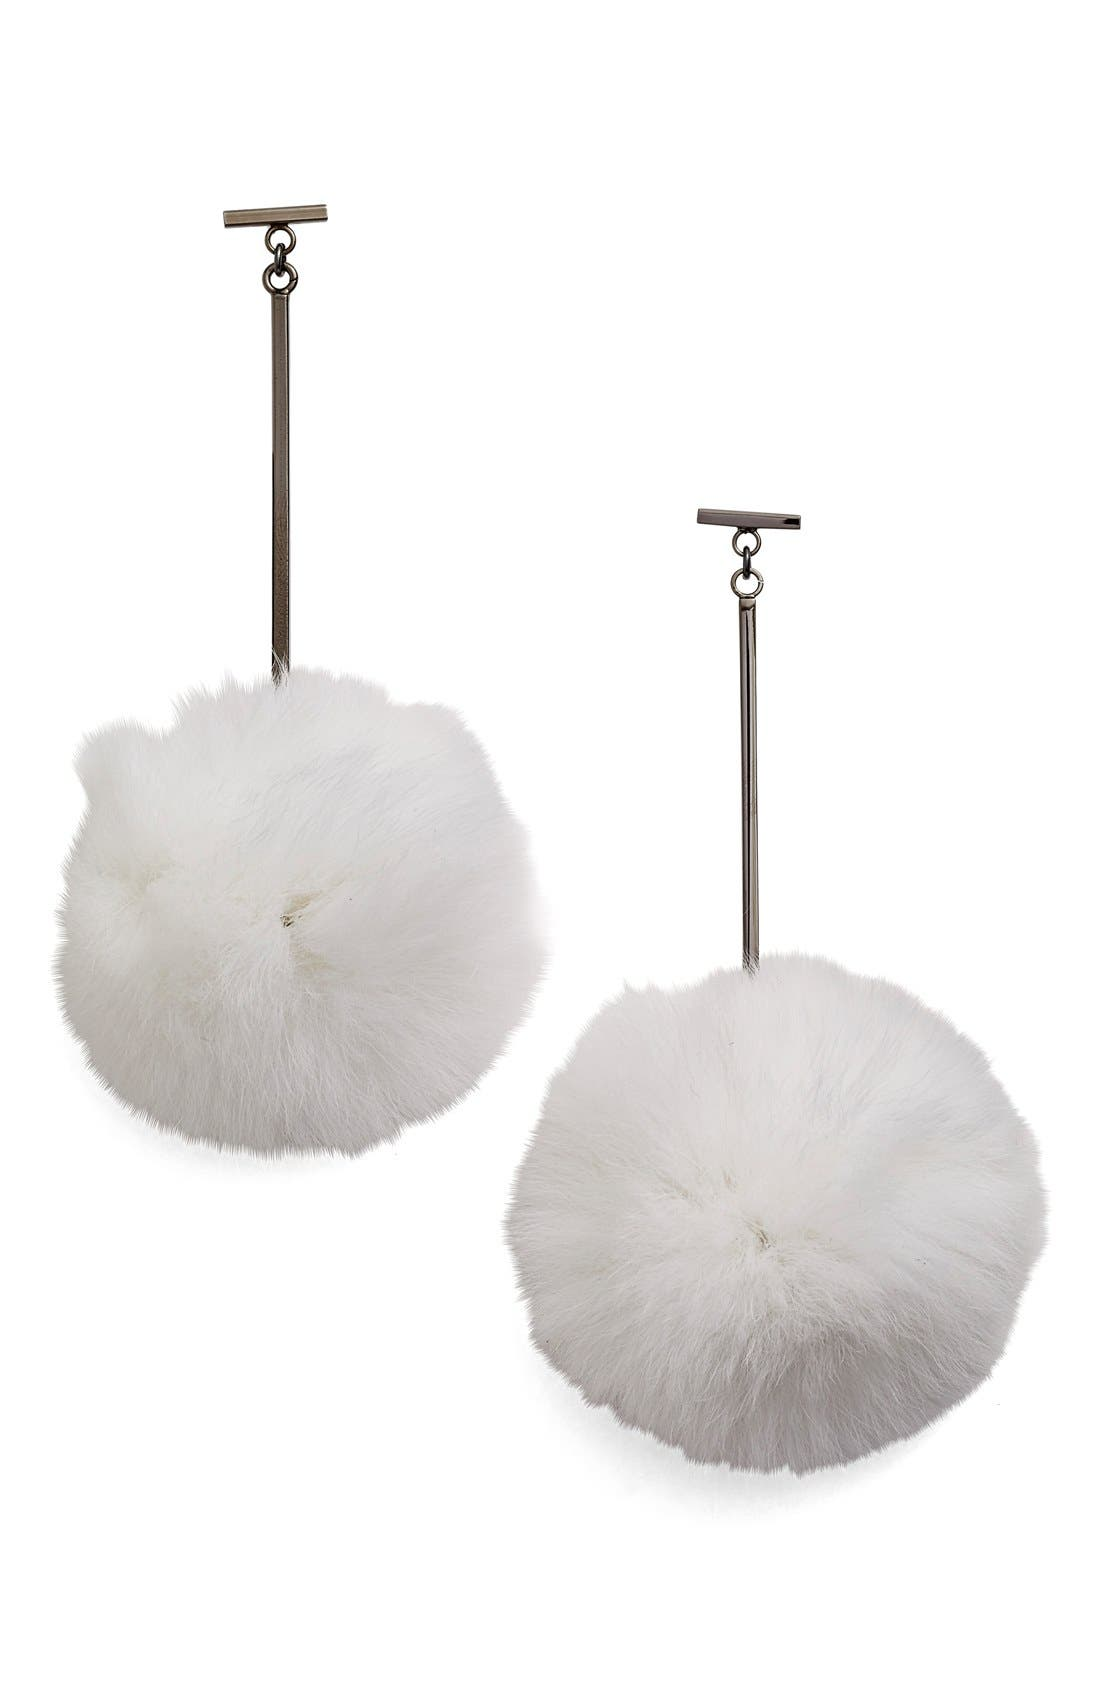 Alternate Image 1 Selected - Tuleste 'Pom Pom' Genuine Rabbit Fur Drop Earrings